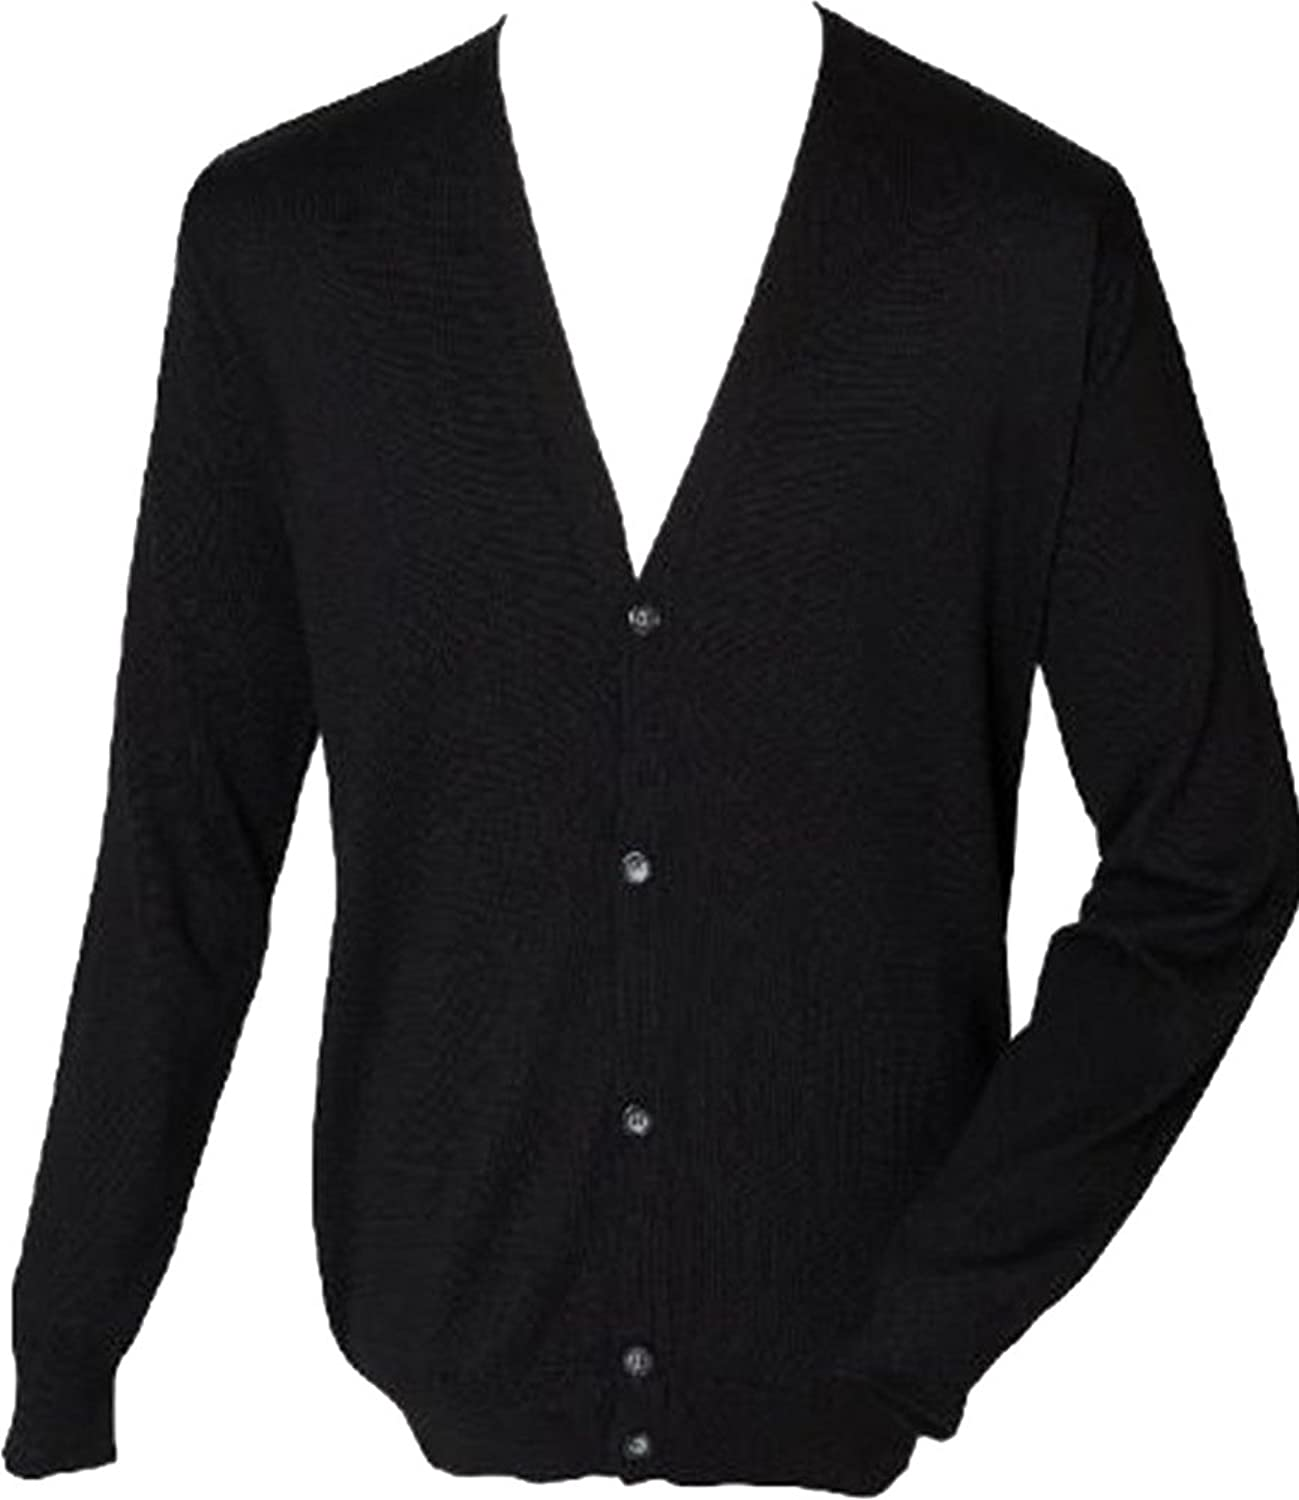 New Henbury Mens Outwear Long Sleeves V-Neck Button Fastening Cardigan Sweater